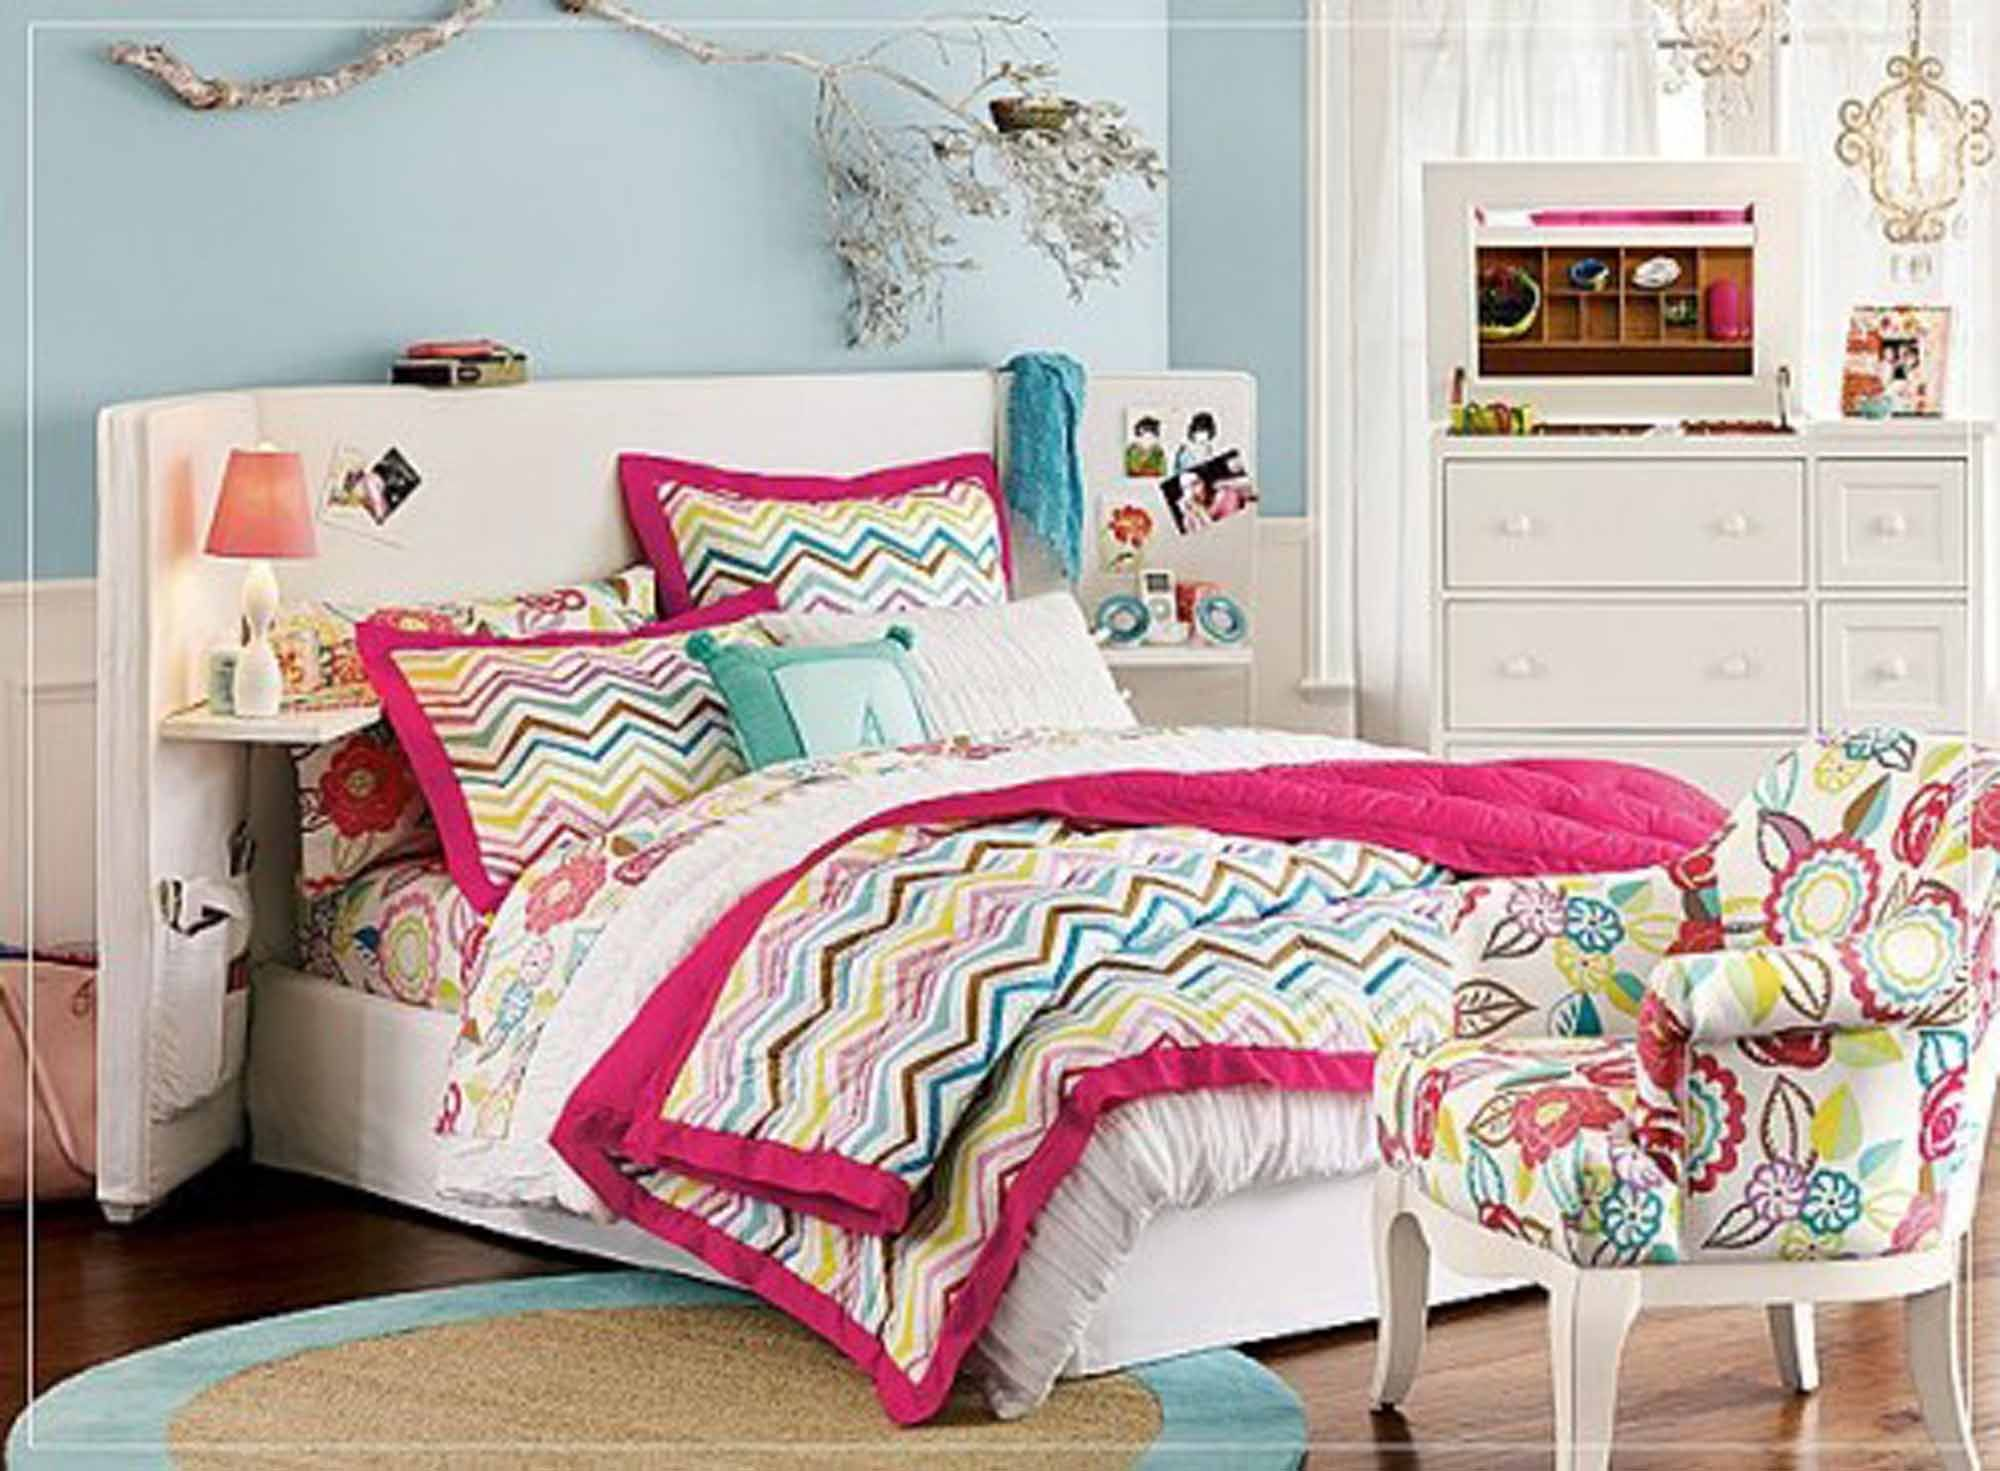 Bedroom Designs For Teenage Girls 51 Best Bedrooms Images On Pinterest  Child Room Kid Bedrooms